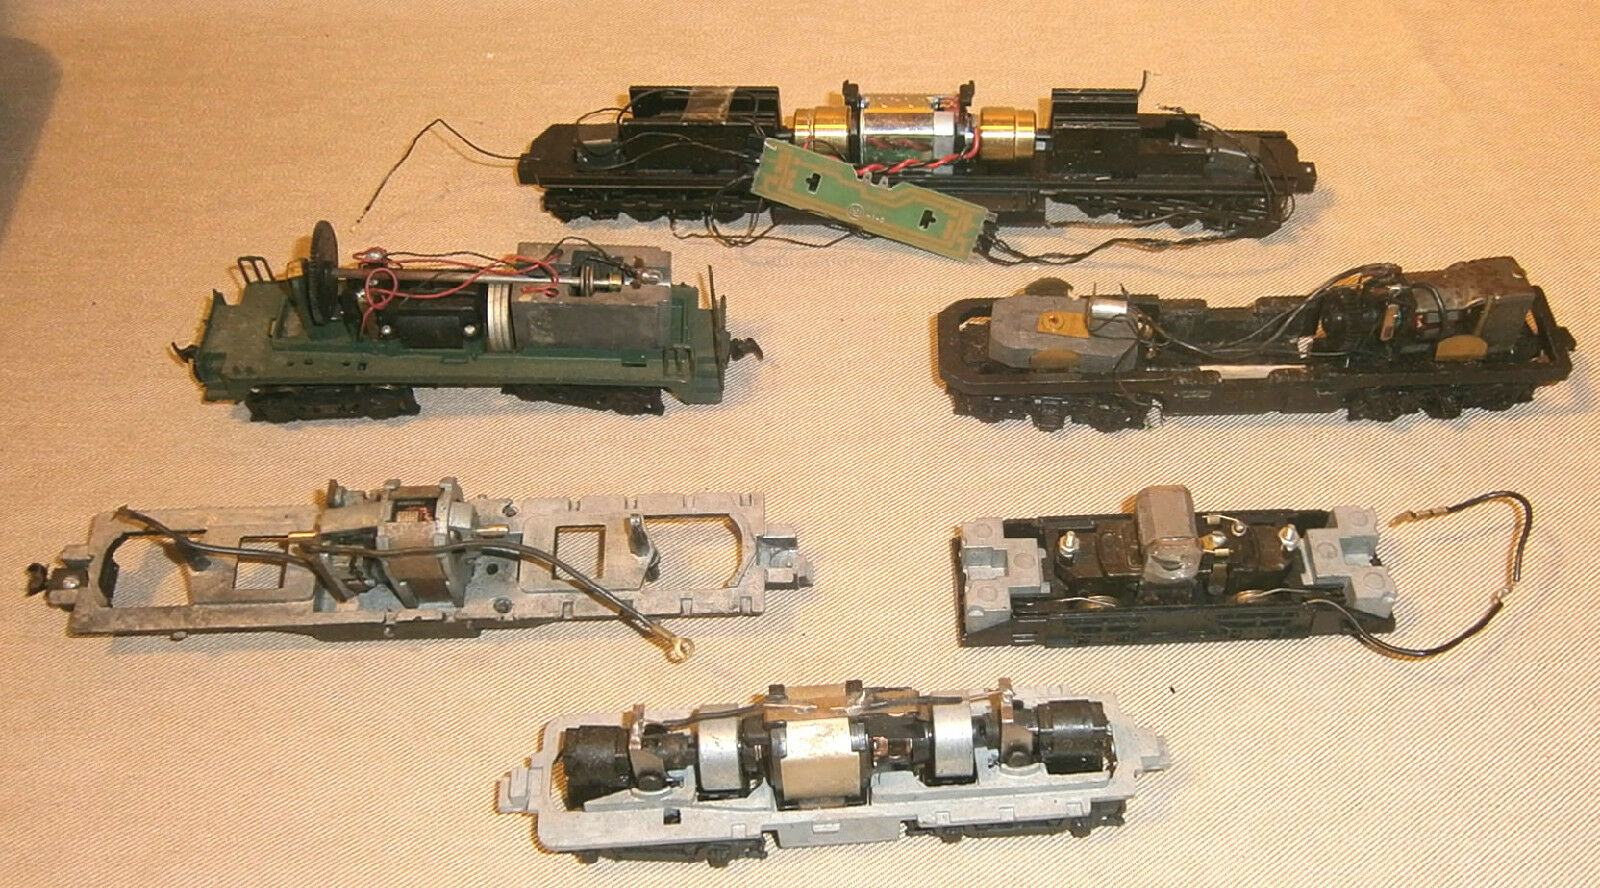 Lot Of 6 Vintage HO Scale Train Chassis Frames With Motors #2